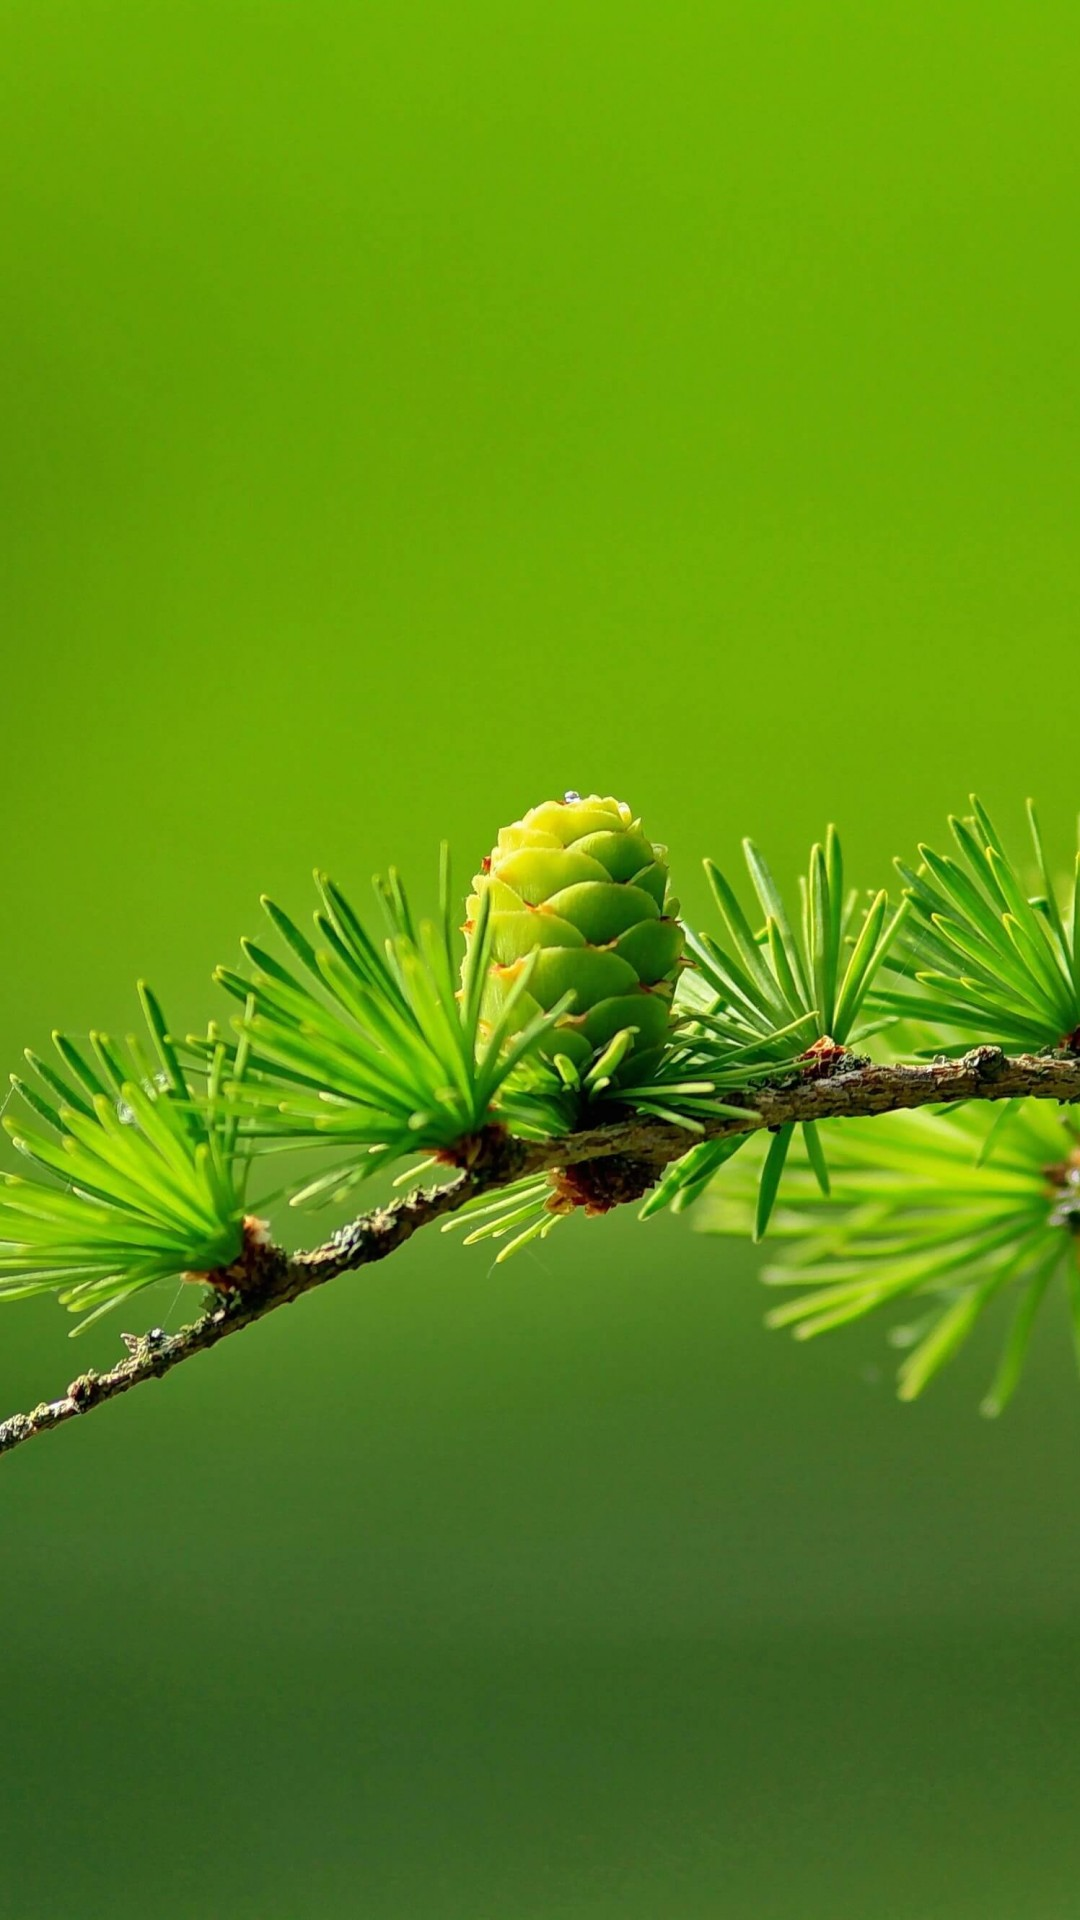 Branch of Pine Tree Wallpaper for SONY Xperia Z3